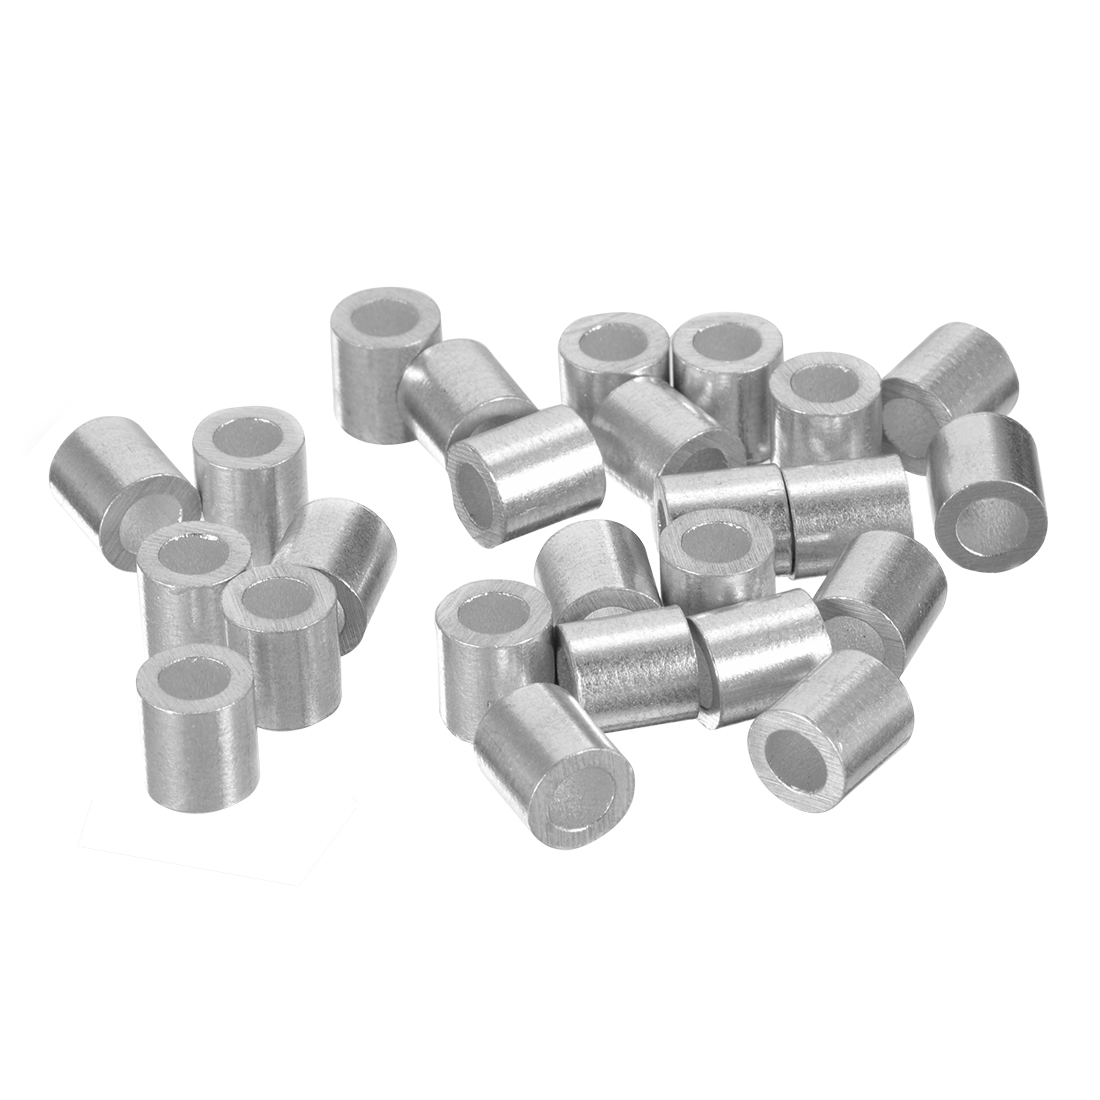 Uxcell 4.5mm 11/64-inch Cable Wire Rope Aluminum Sleeves Clip Crimping Loop 25pcs